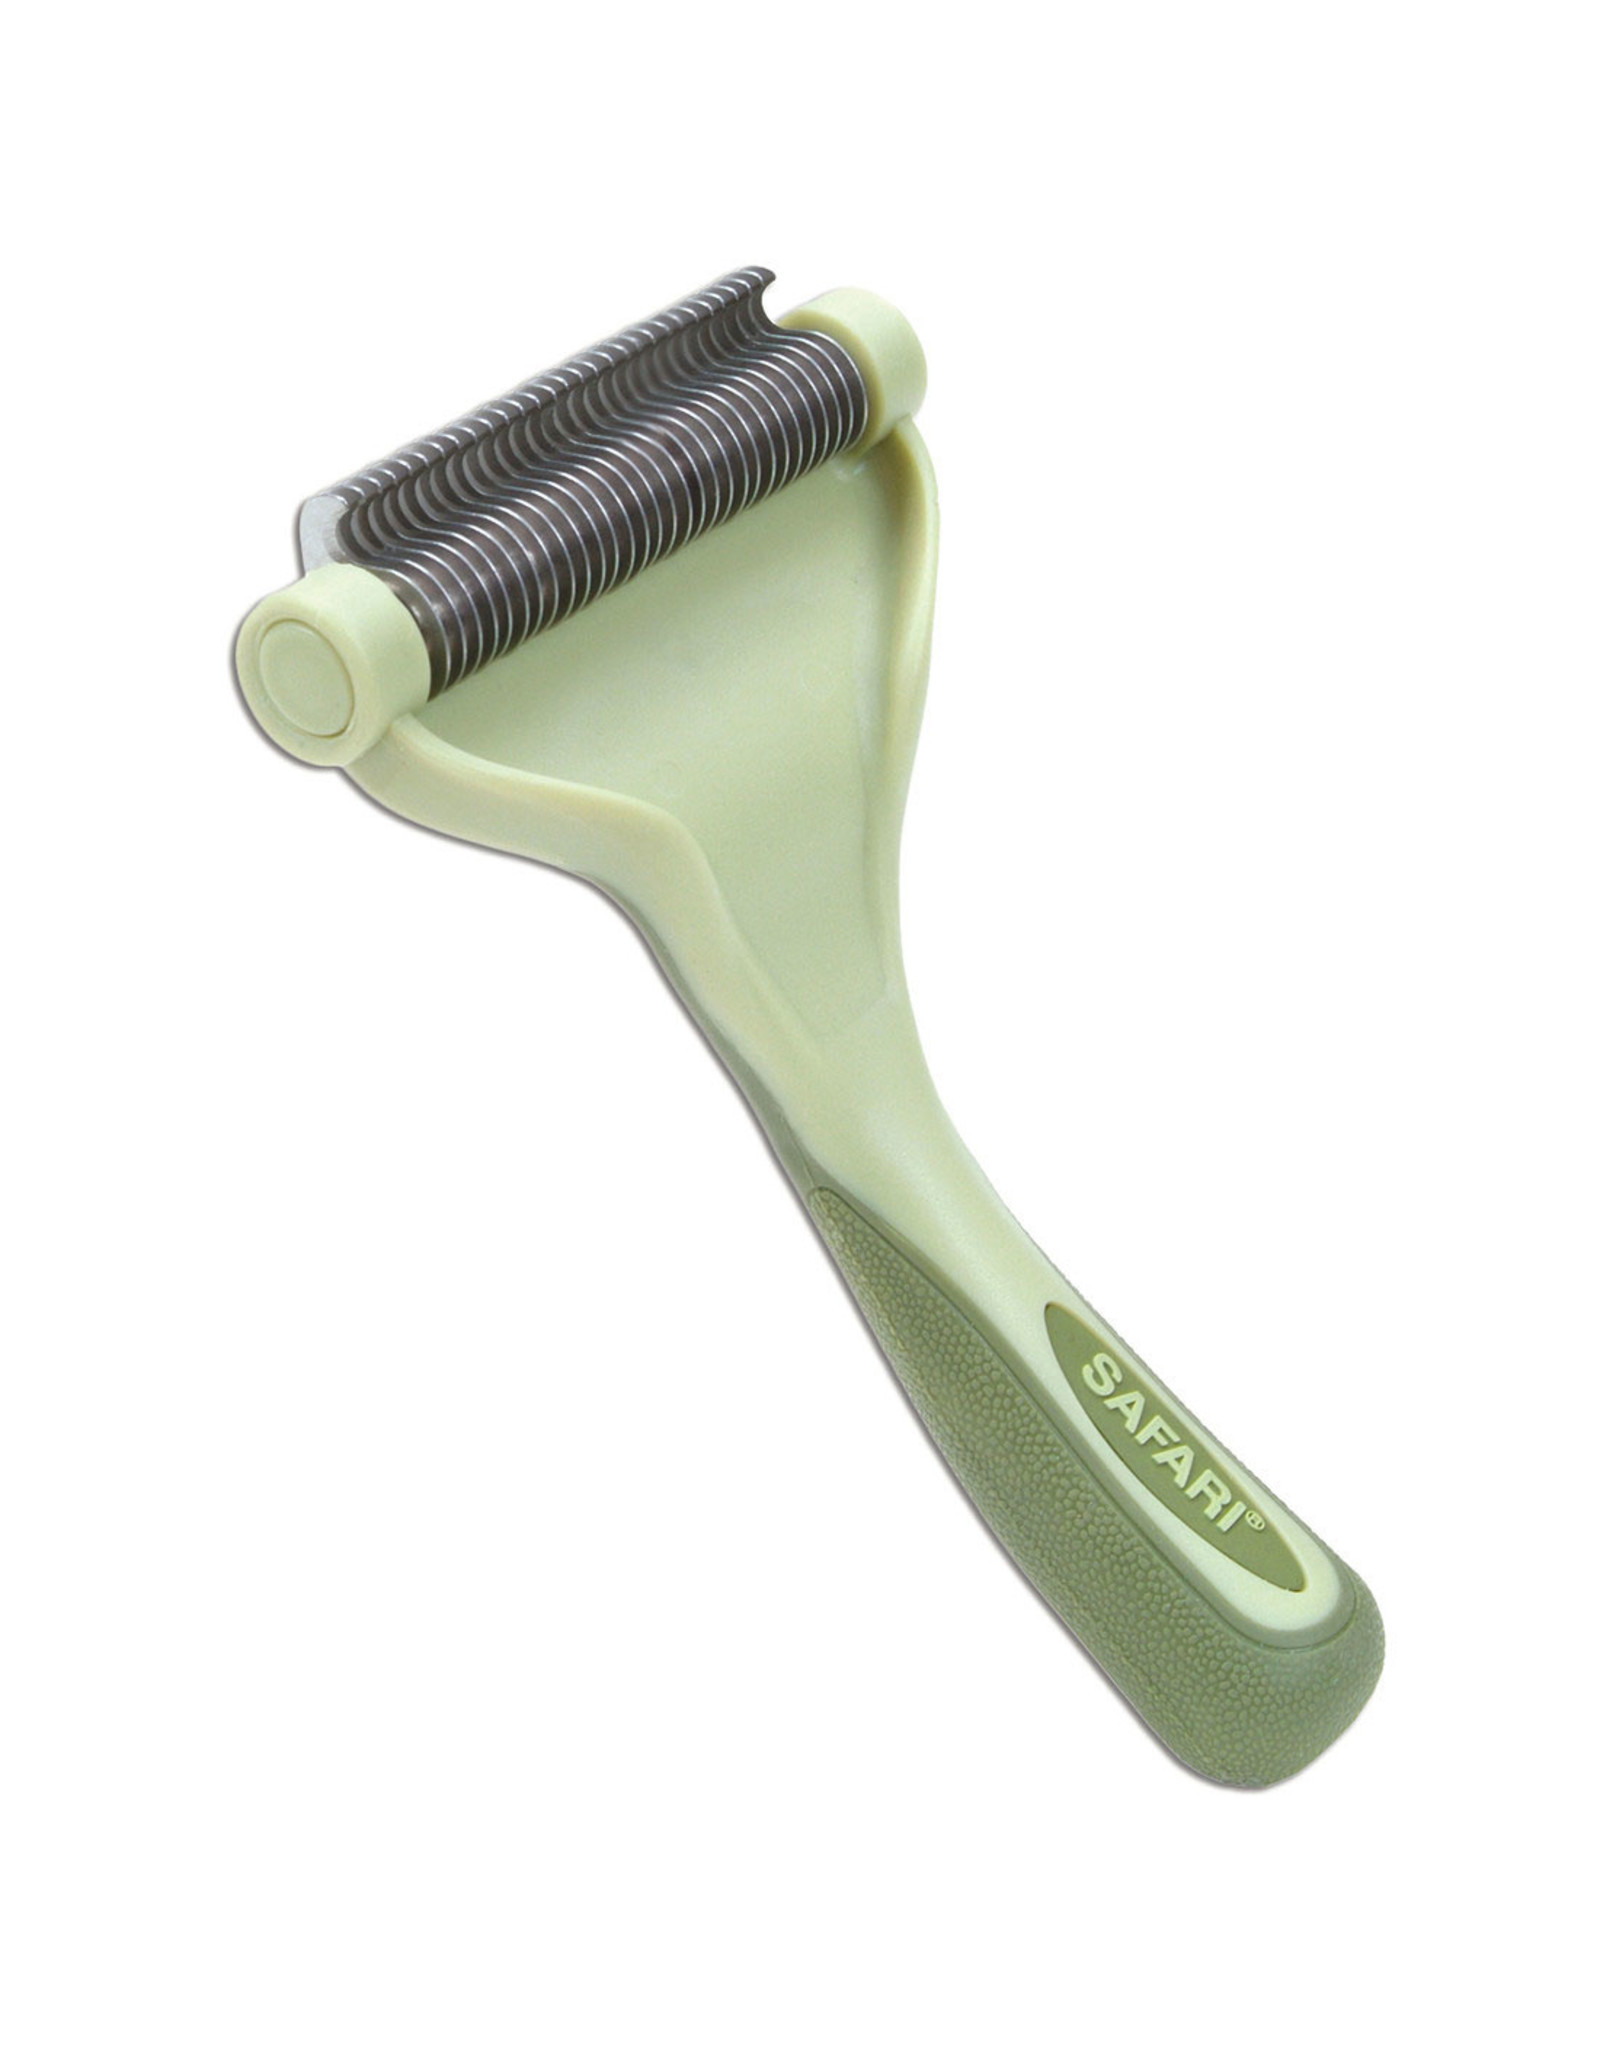 Coastal Pet Products Safari Shed Magic De-Shedding Tool for Dogs with Medium to Long Hair